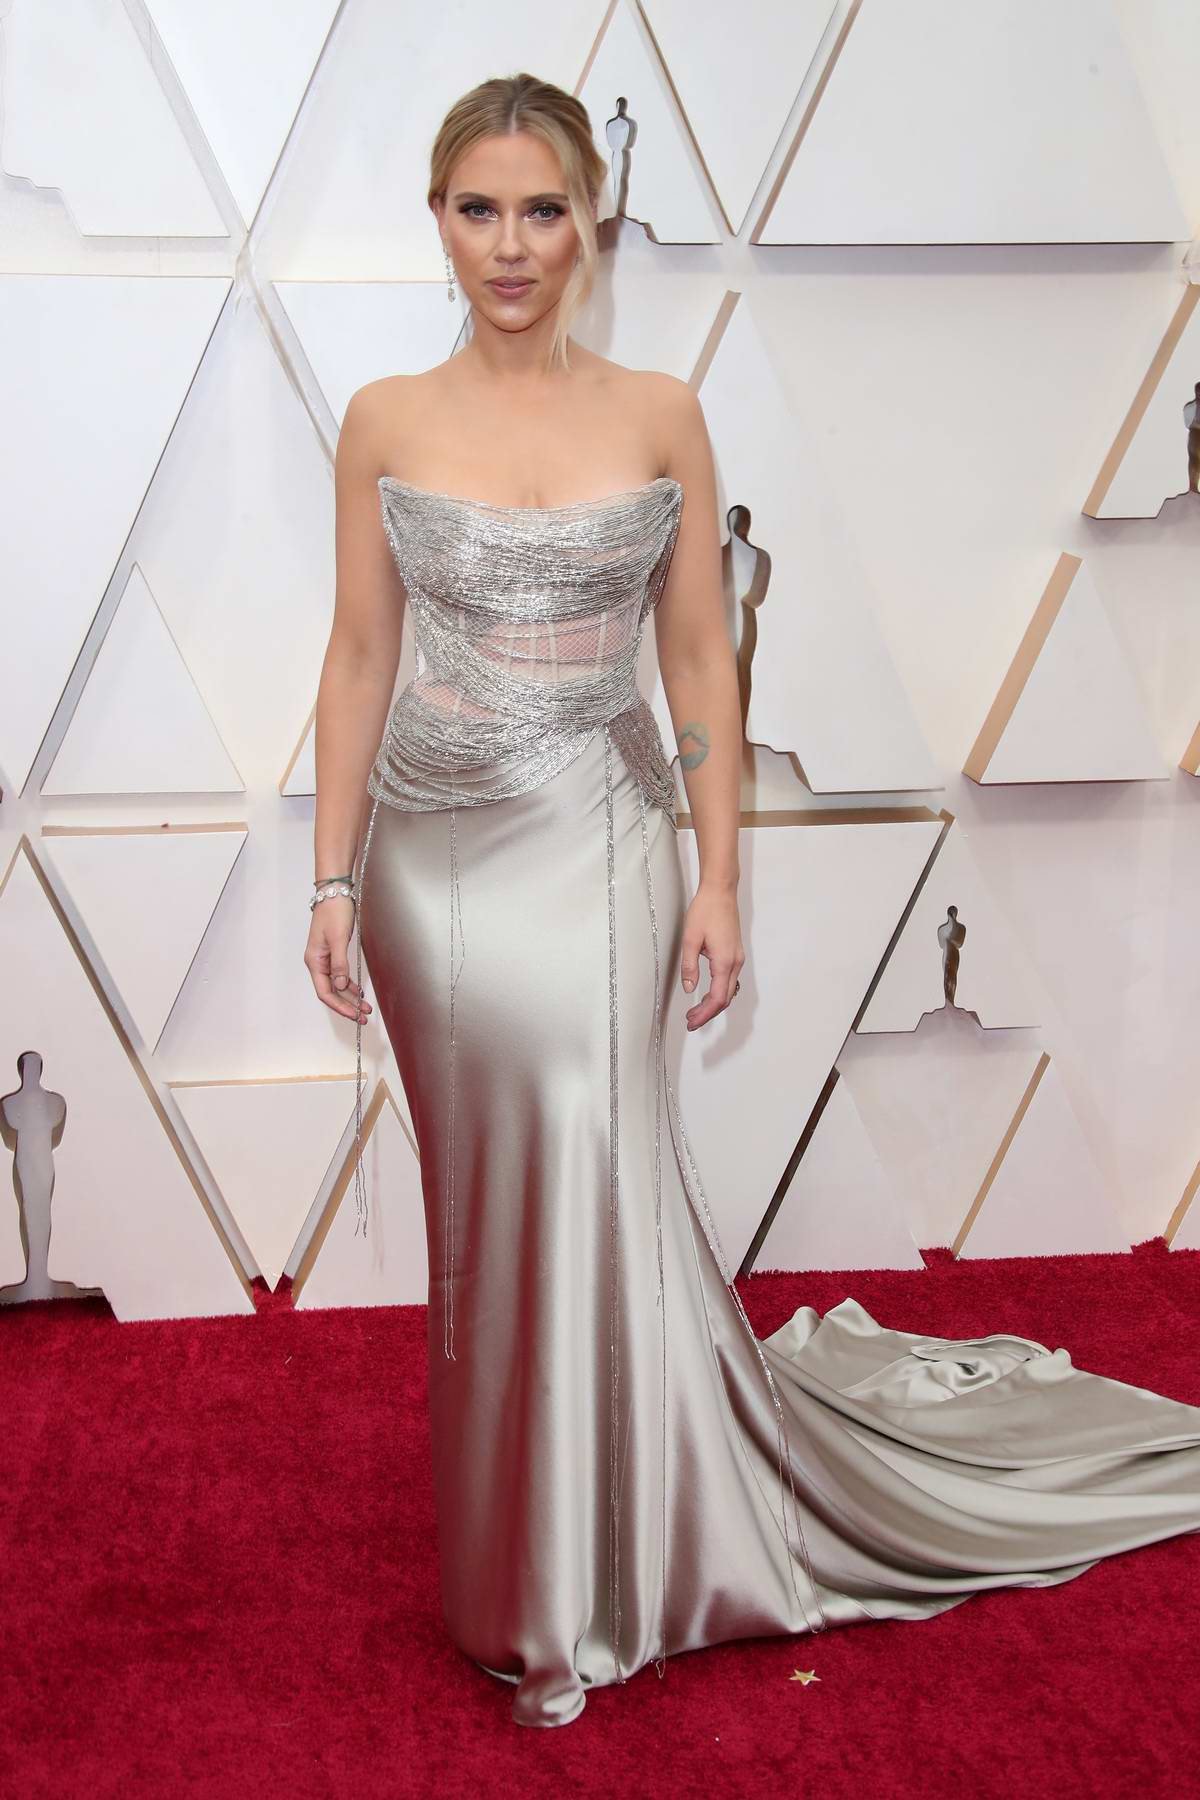 Scarlett Johansson attends the 92nd Annual Academy Awards at Dolby Theatre in Los Angeles